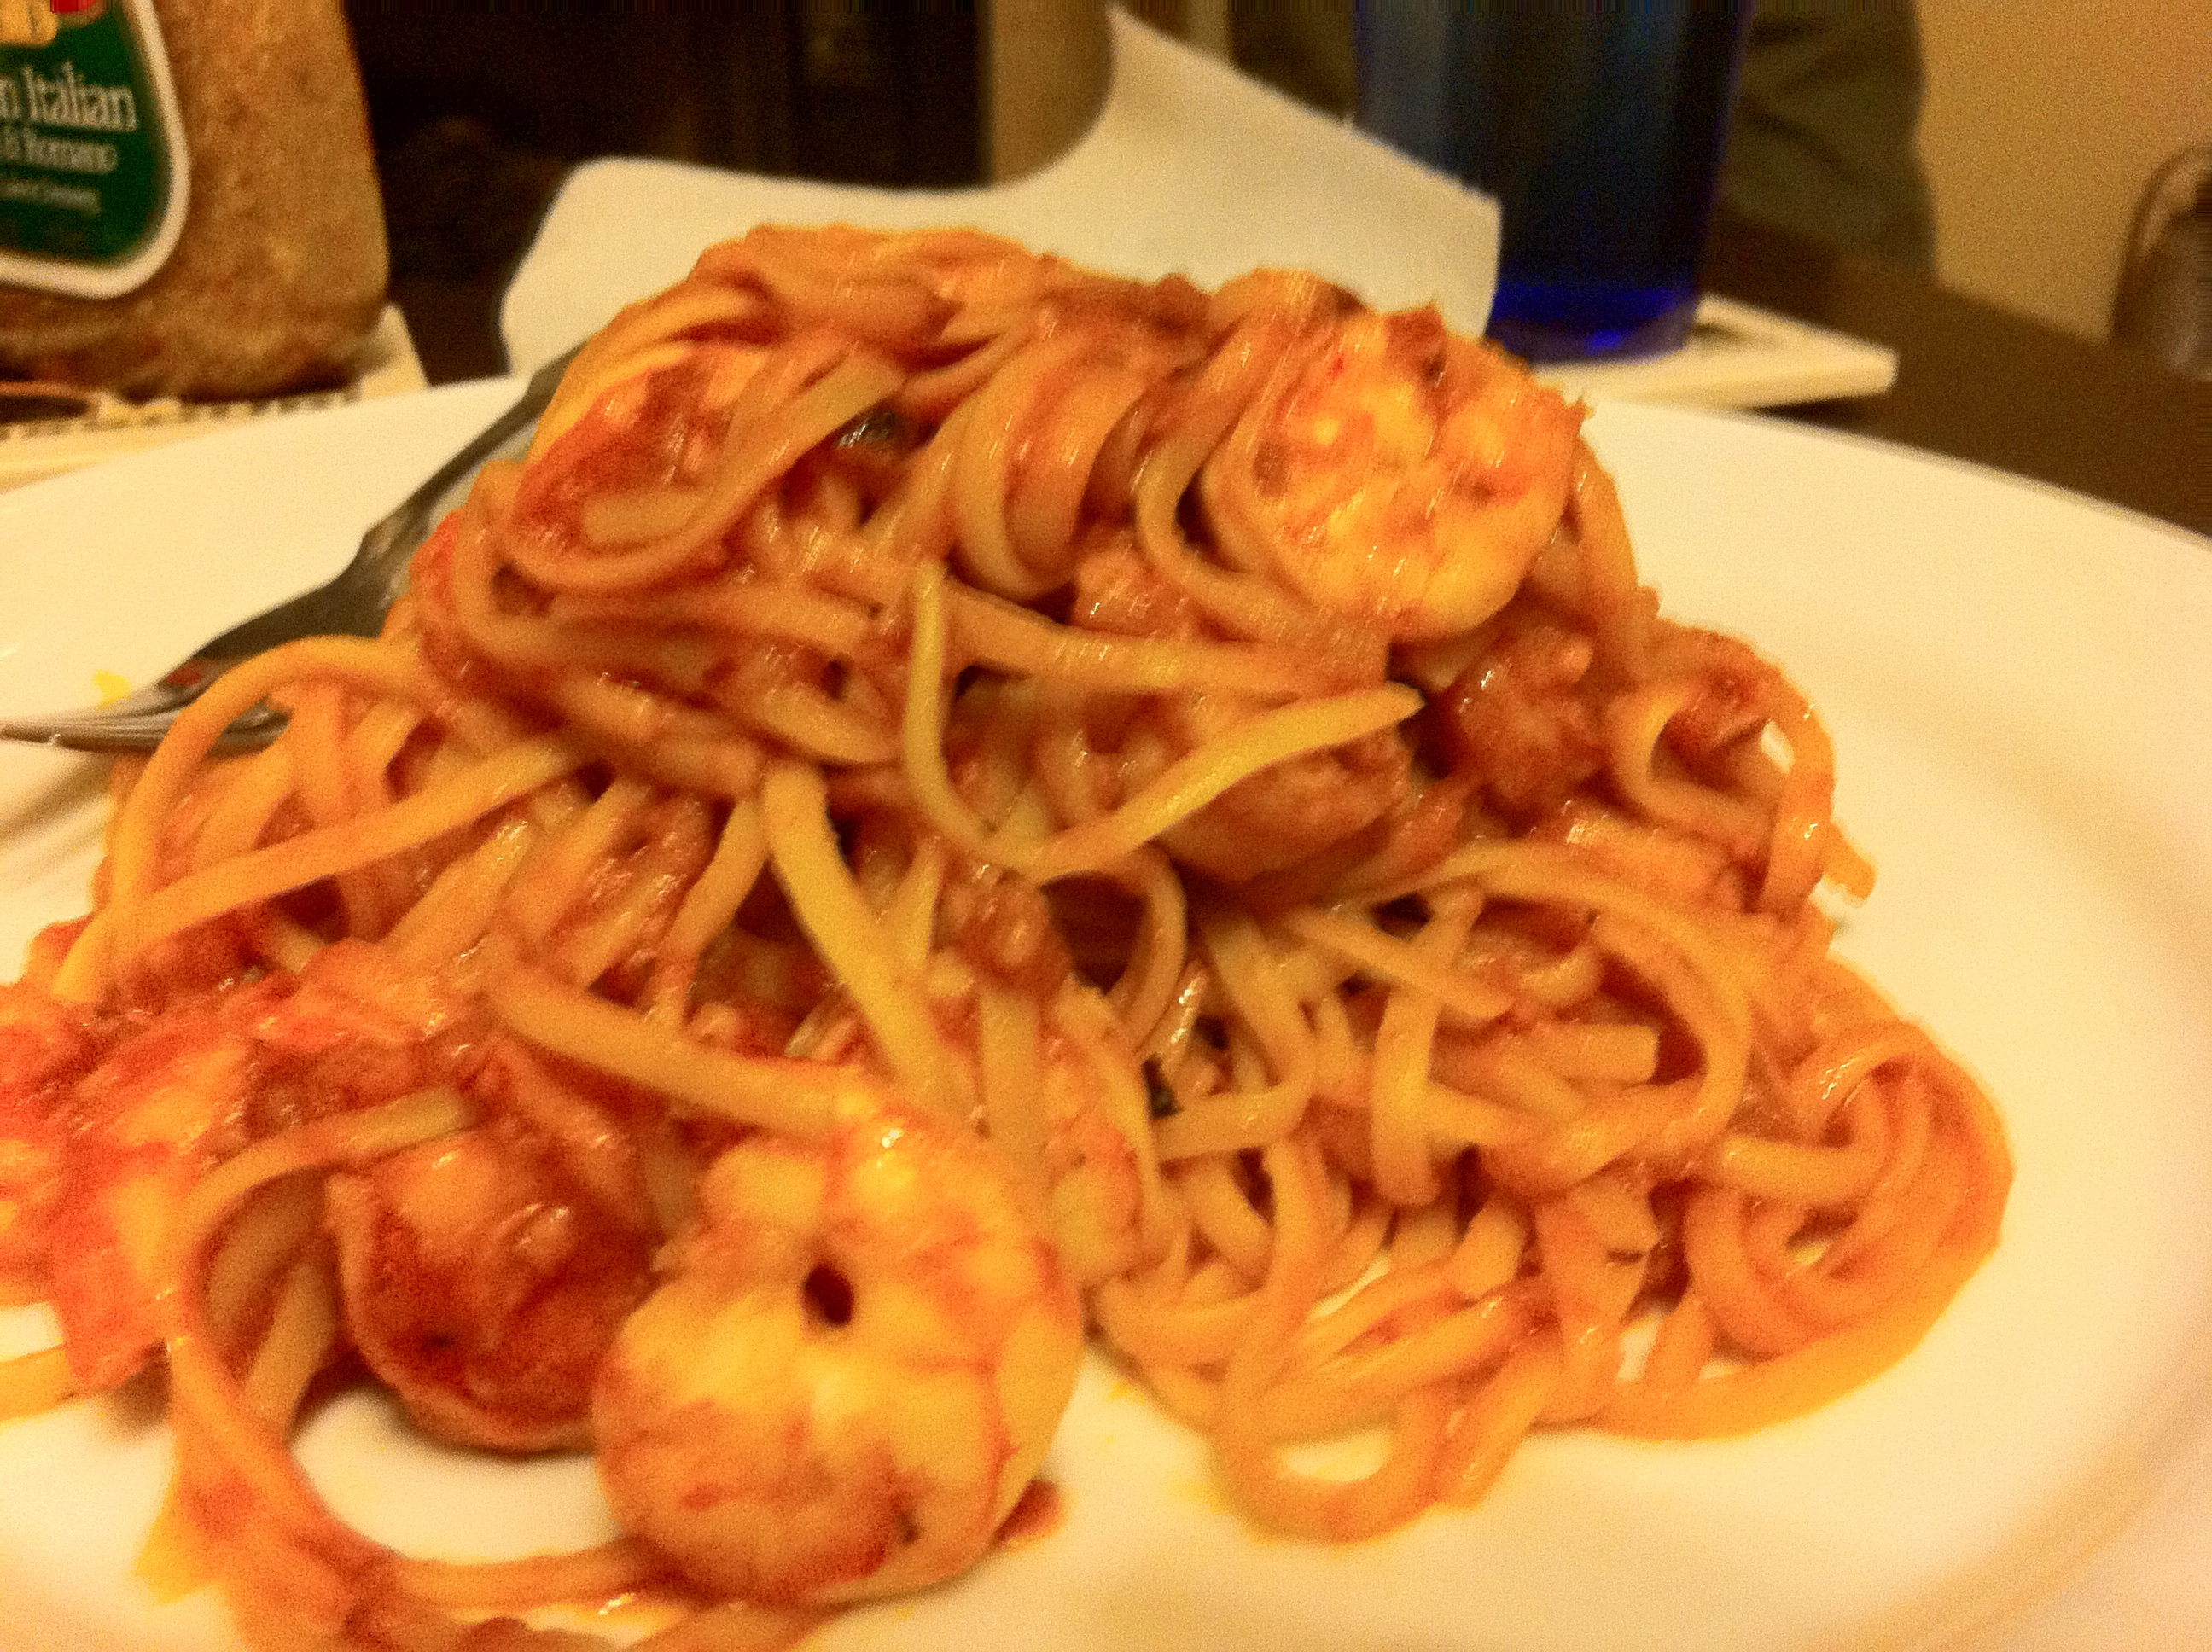 Shrimp and Angel Hair Fra Diavolo by Aurora Meyer on aurorameyer.com